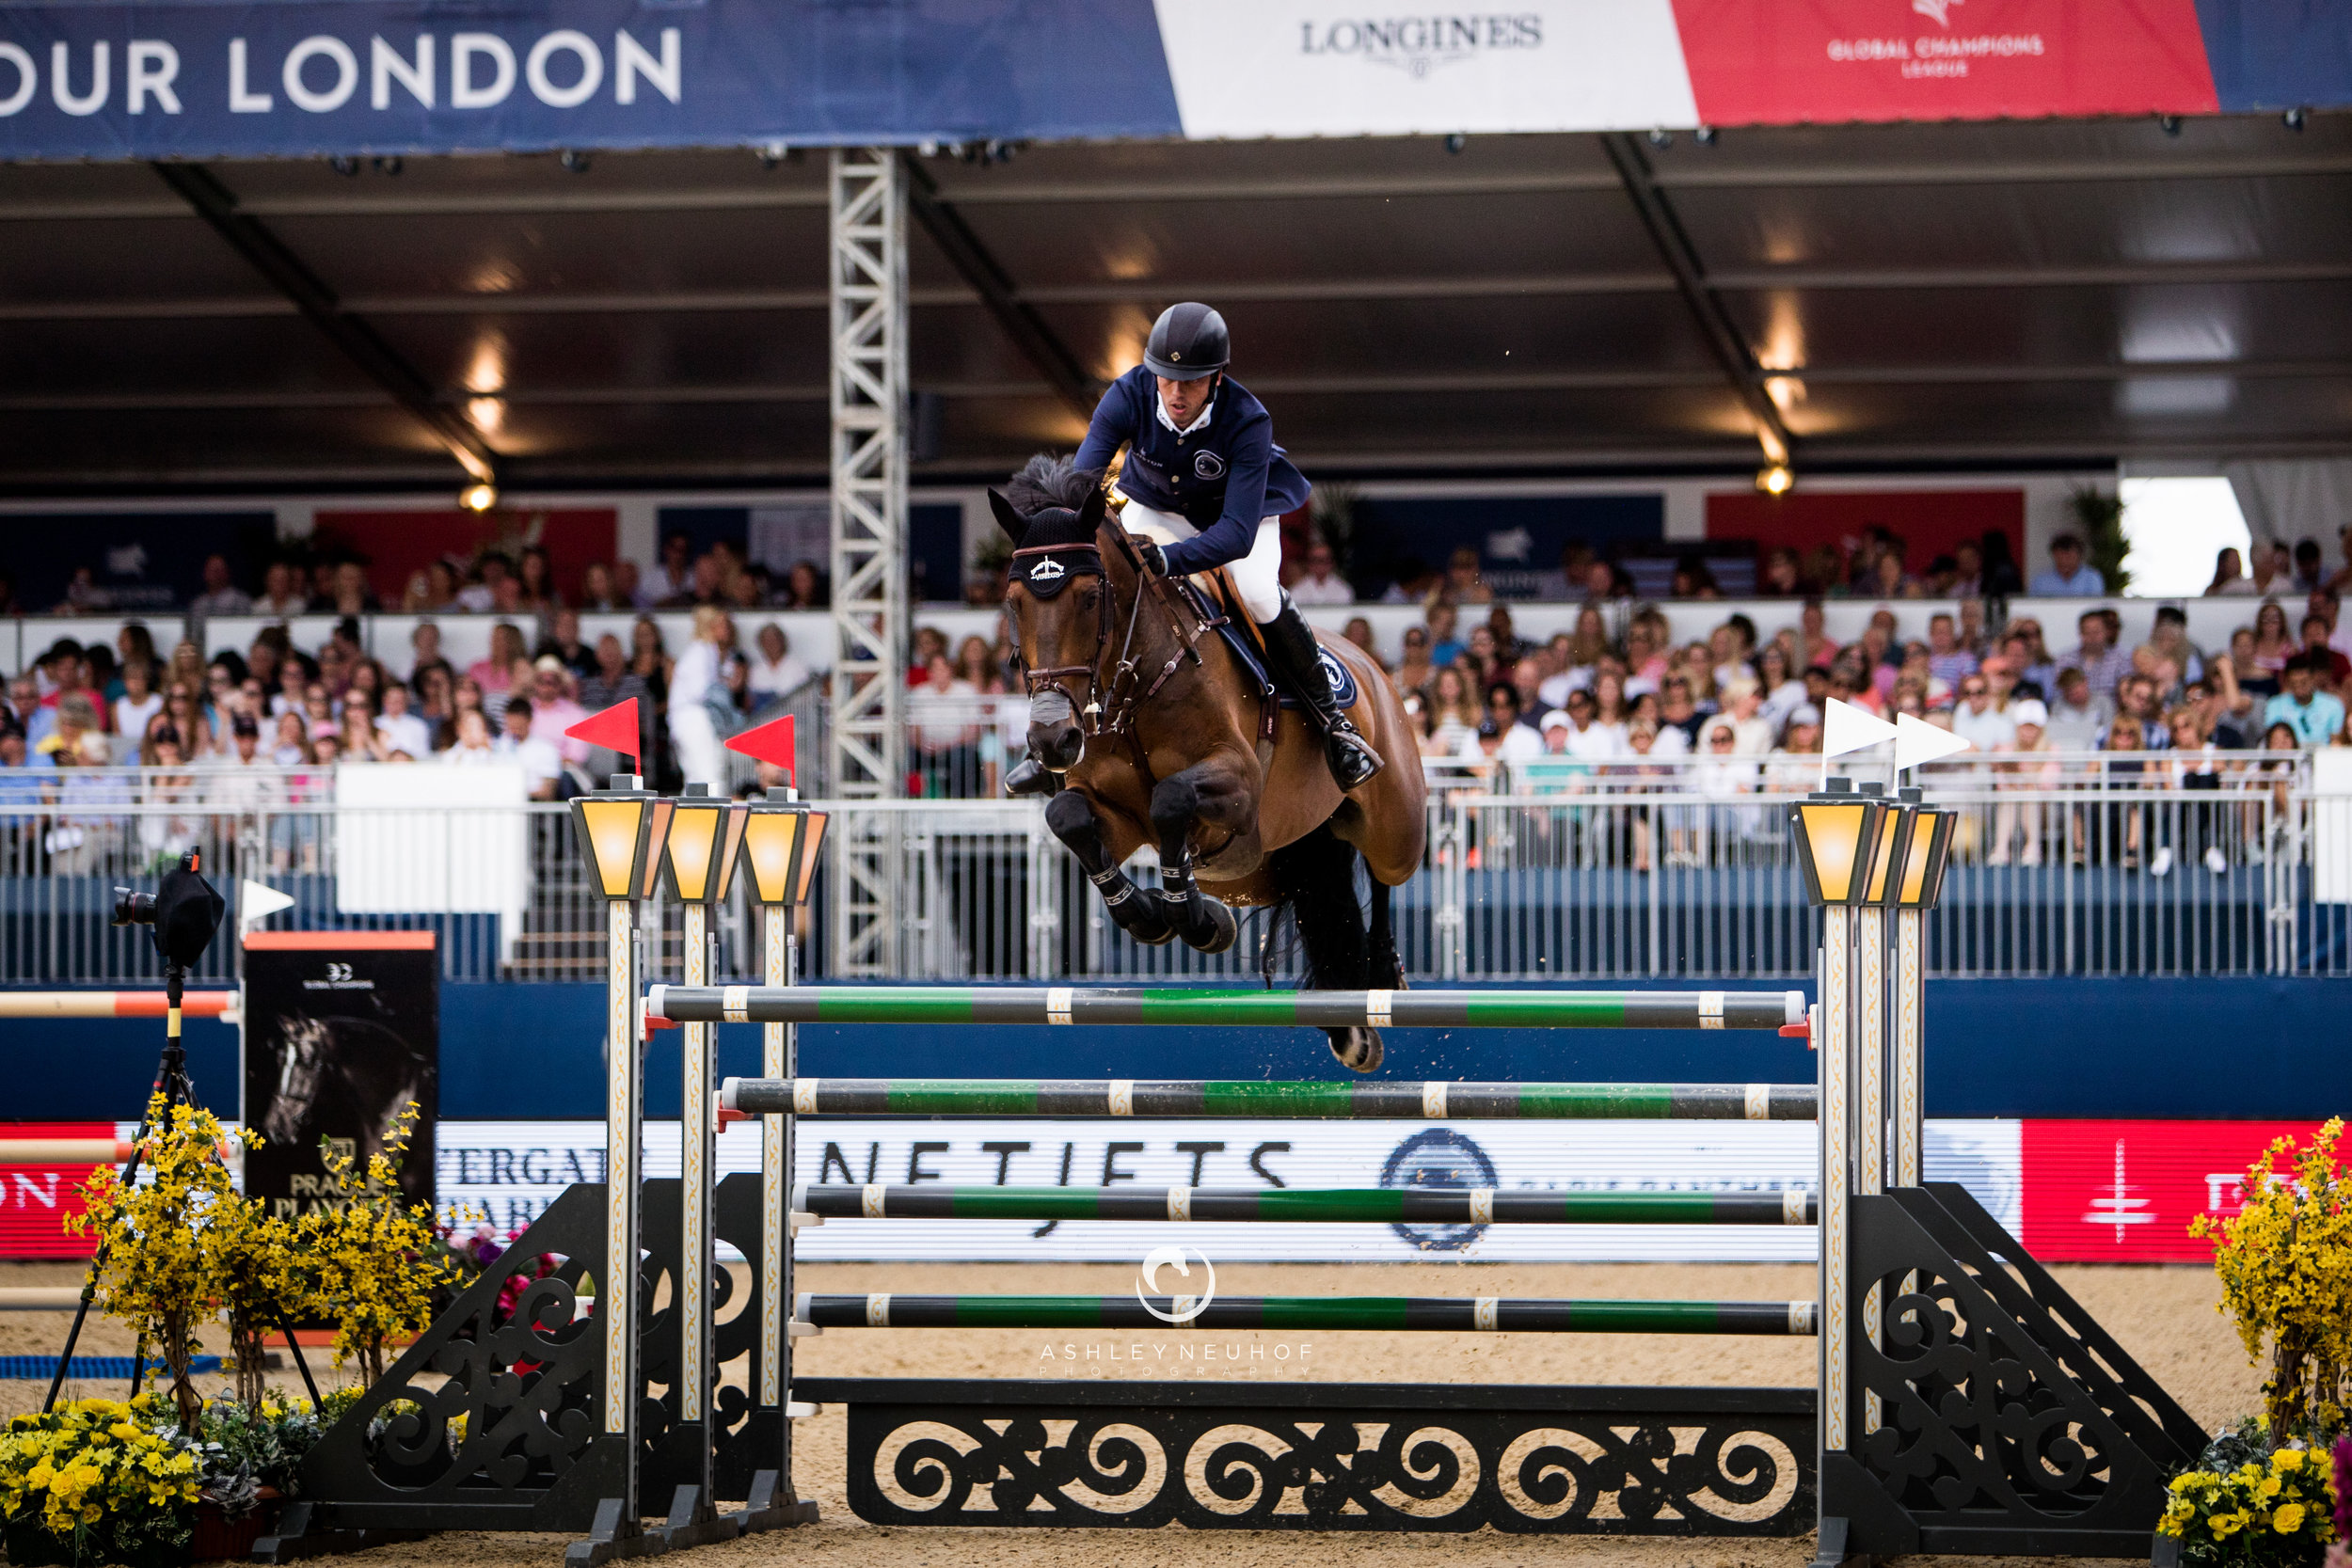 Harrie Smolders and Cas 2 at Global Champions League of London 2019. Photo by Ashley Neuhof Photography.